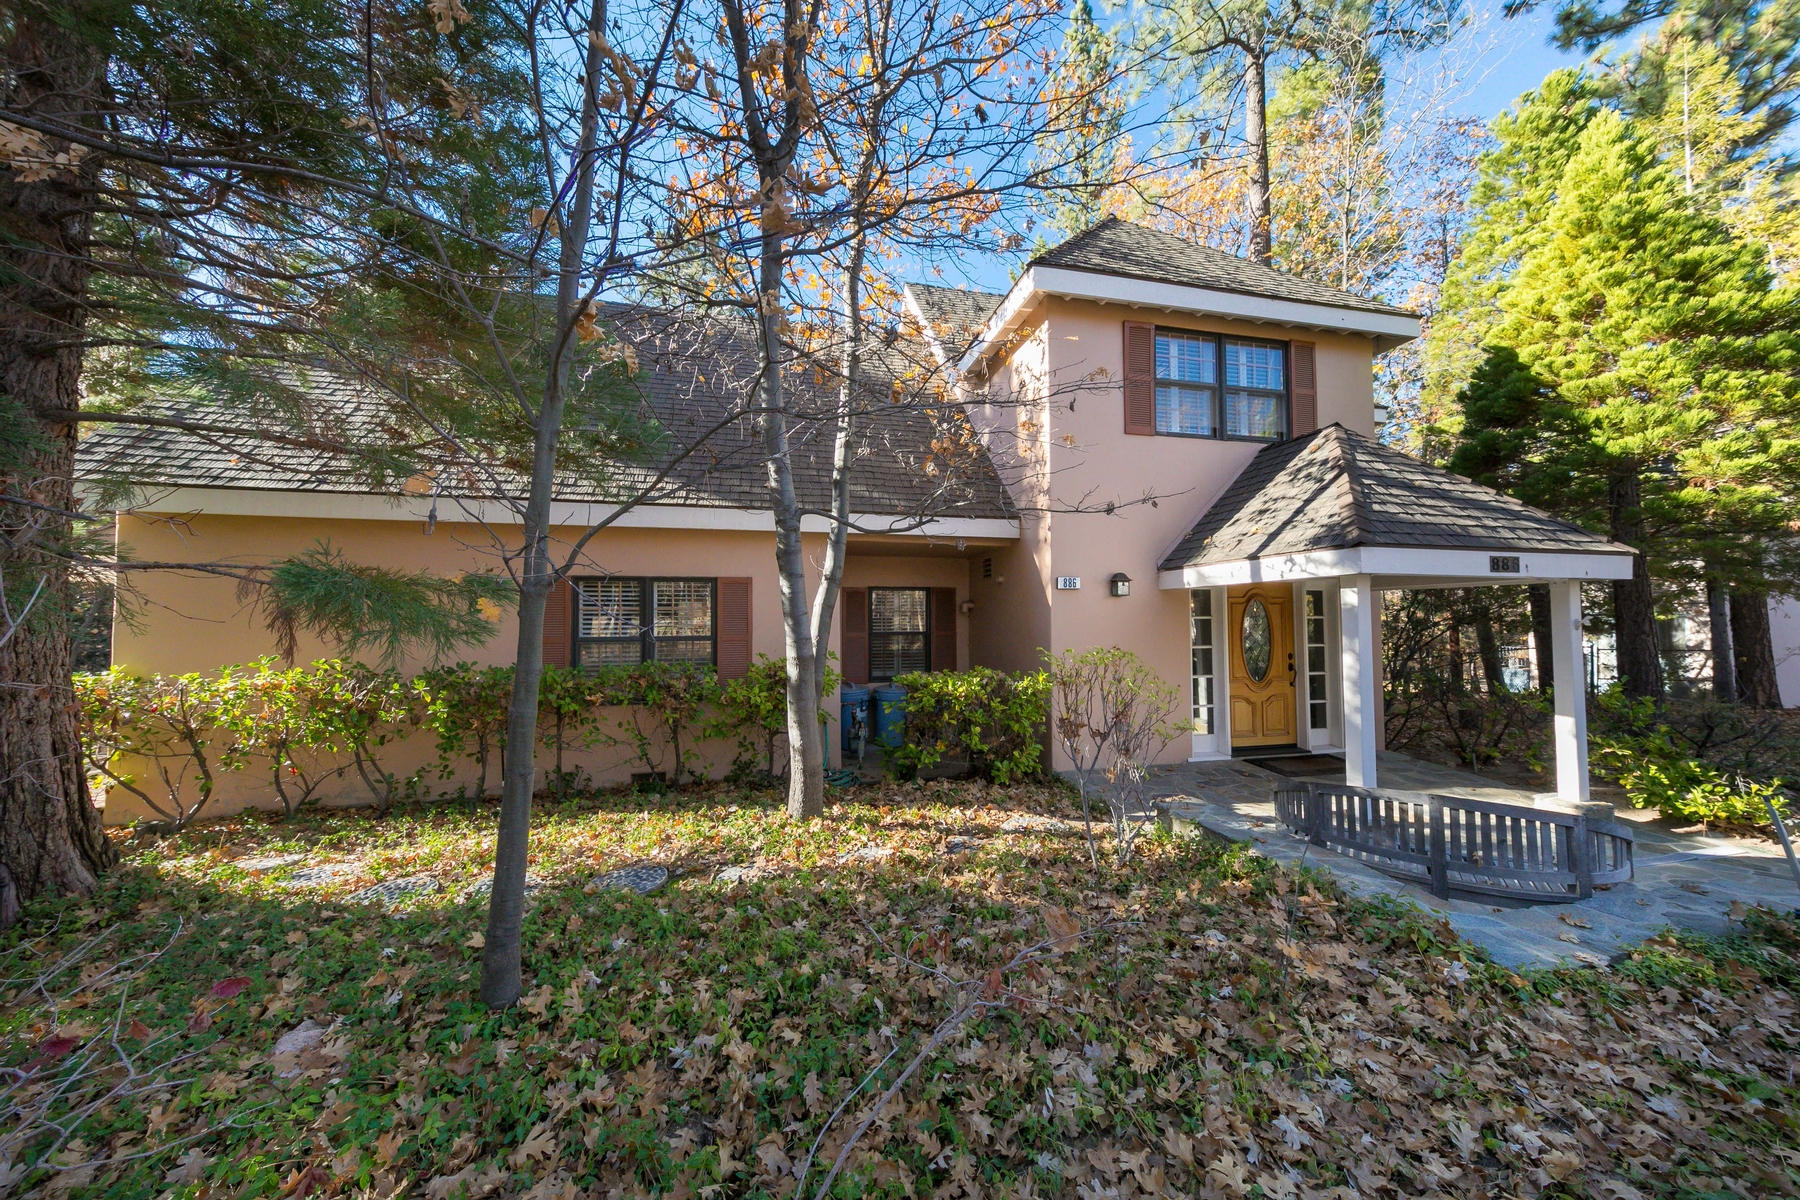 Villa per Vendita alle ore 886 Osprey Lane, Lake Arrowhead Lake Arrowhead, California, 92352 Stati Uniti